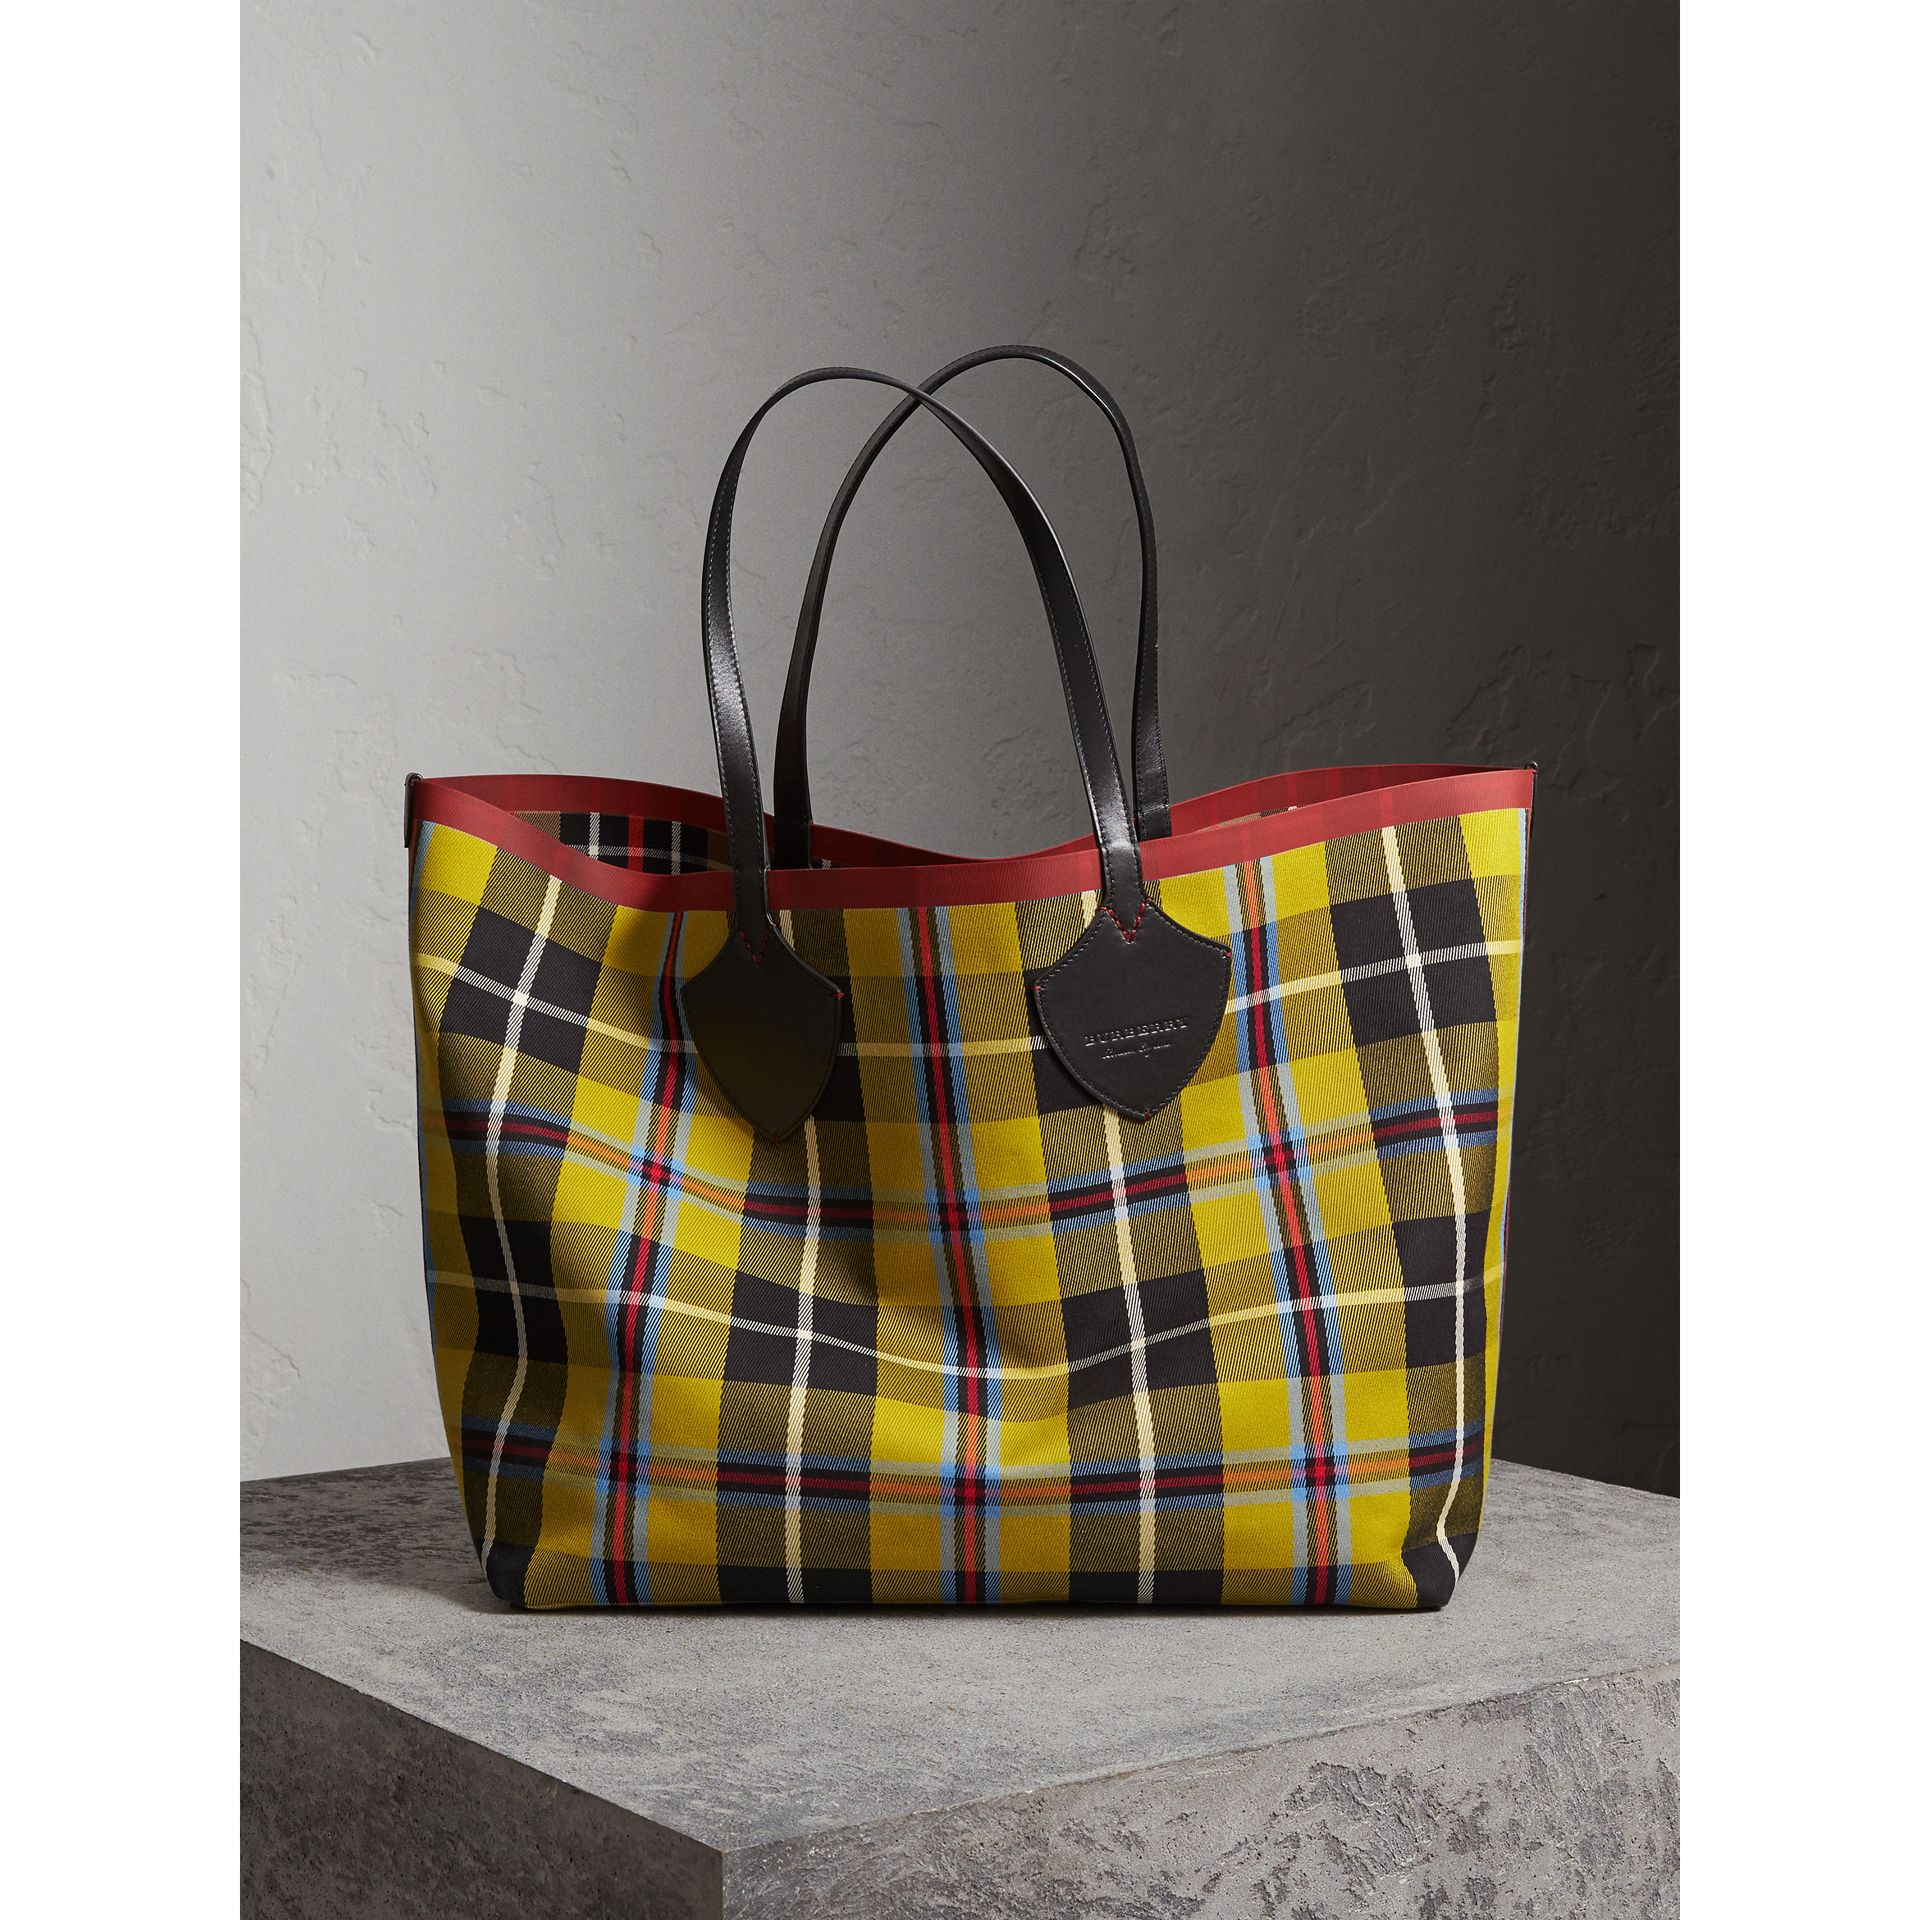 Sac tote The Giant réversible en coton tartan (Caramel/jaune Lin) | Burberry - photo de la galerie 4